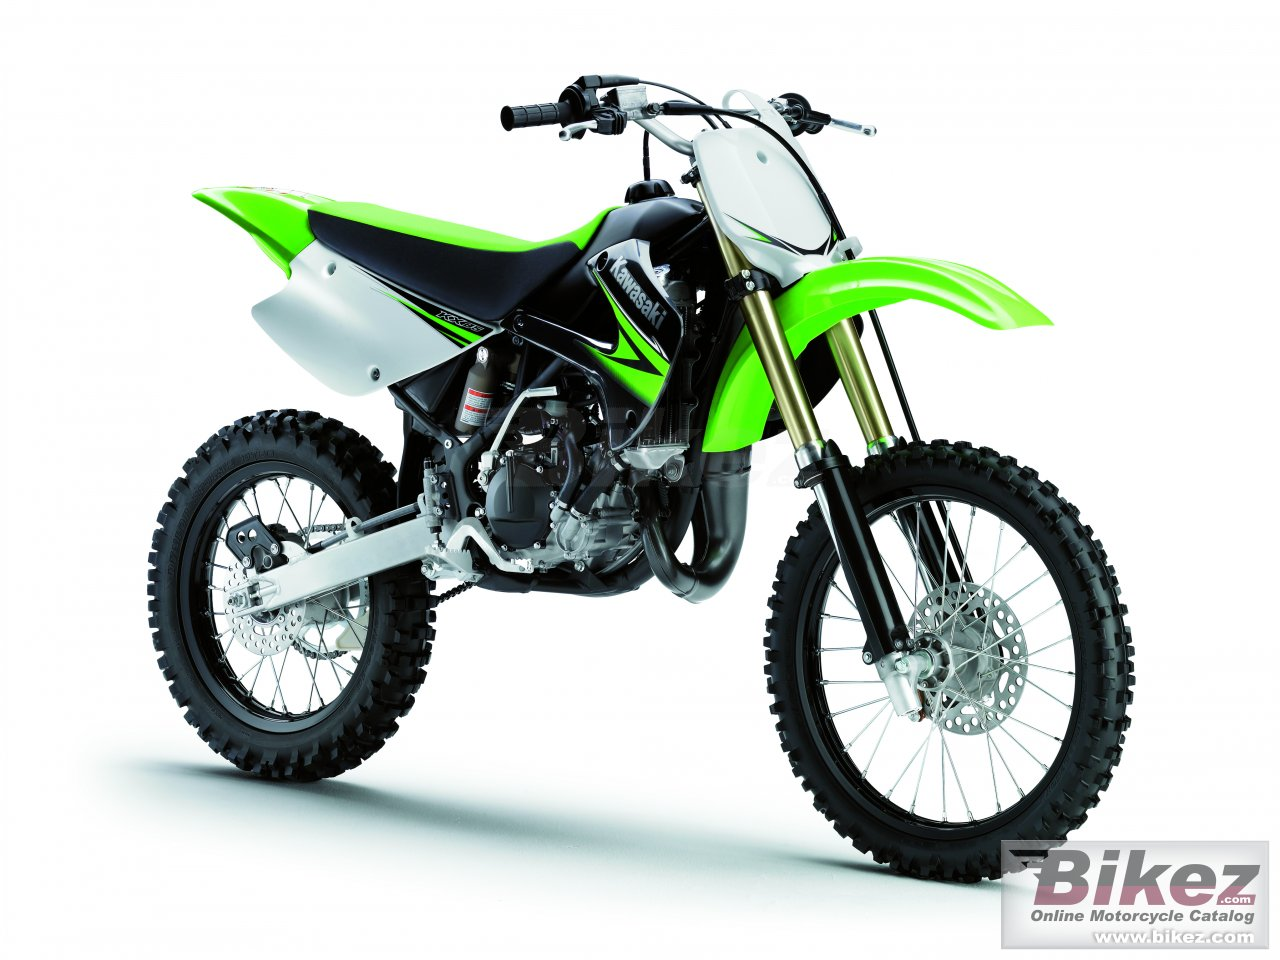 Big Kawasaki kx 85ii picture and wallpaper from Bikez.com